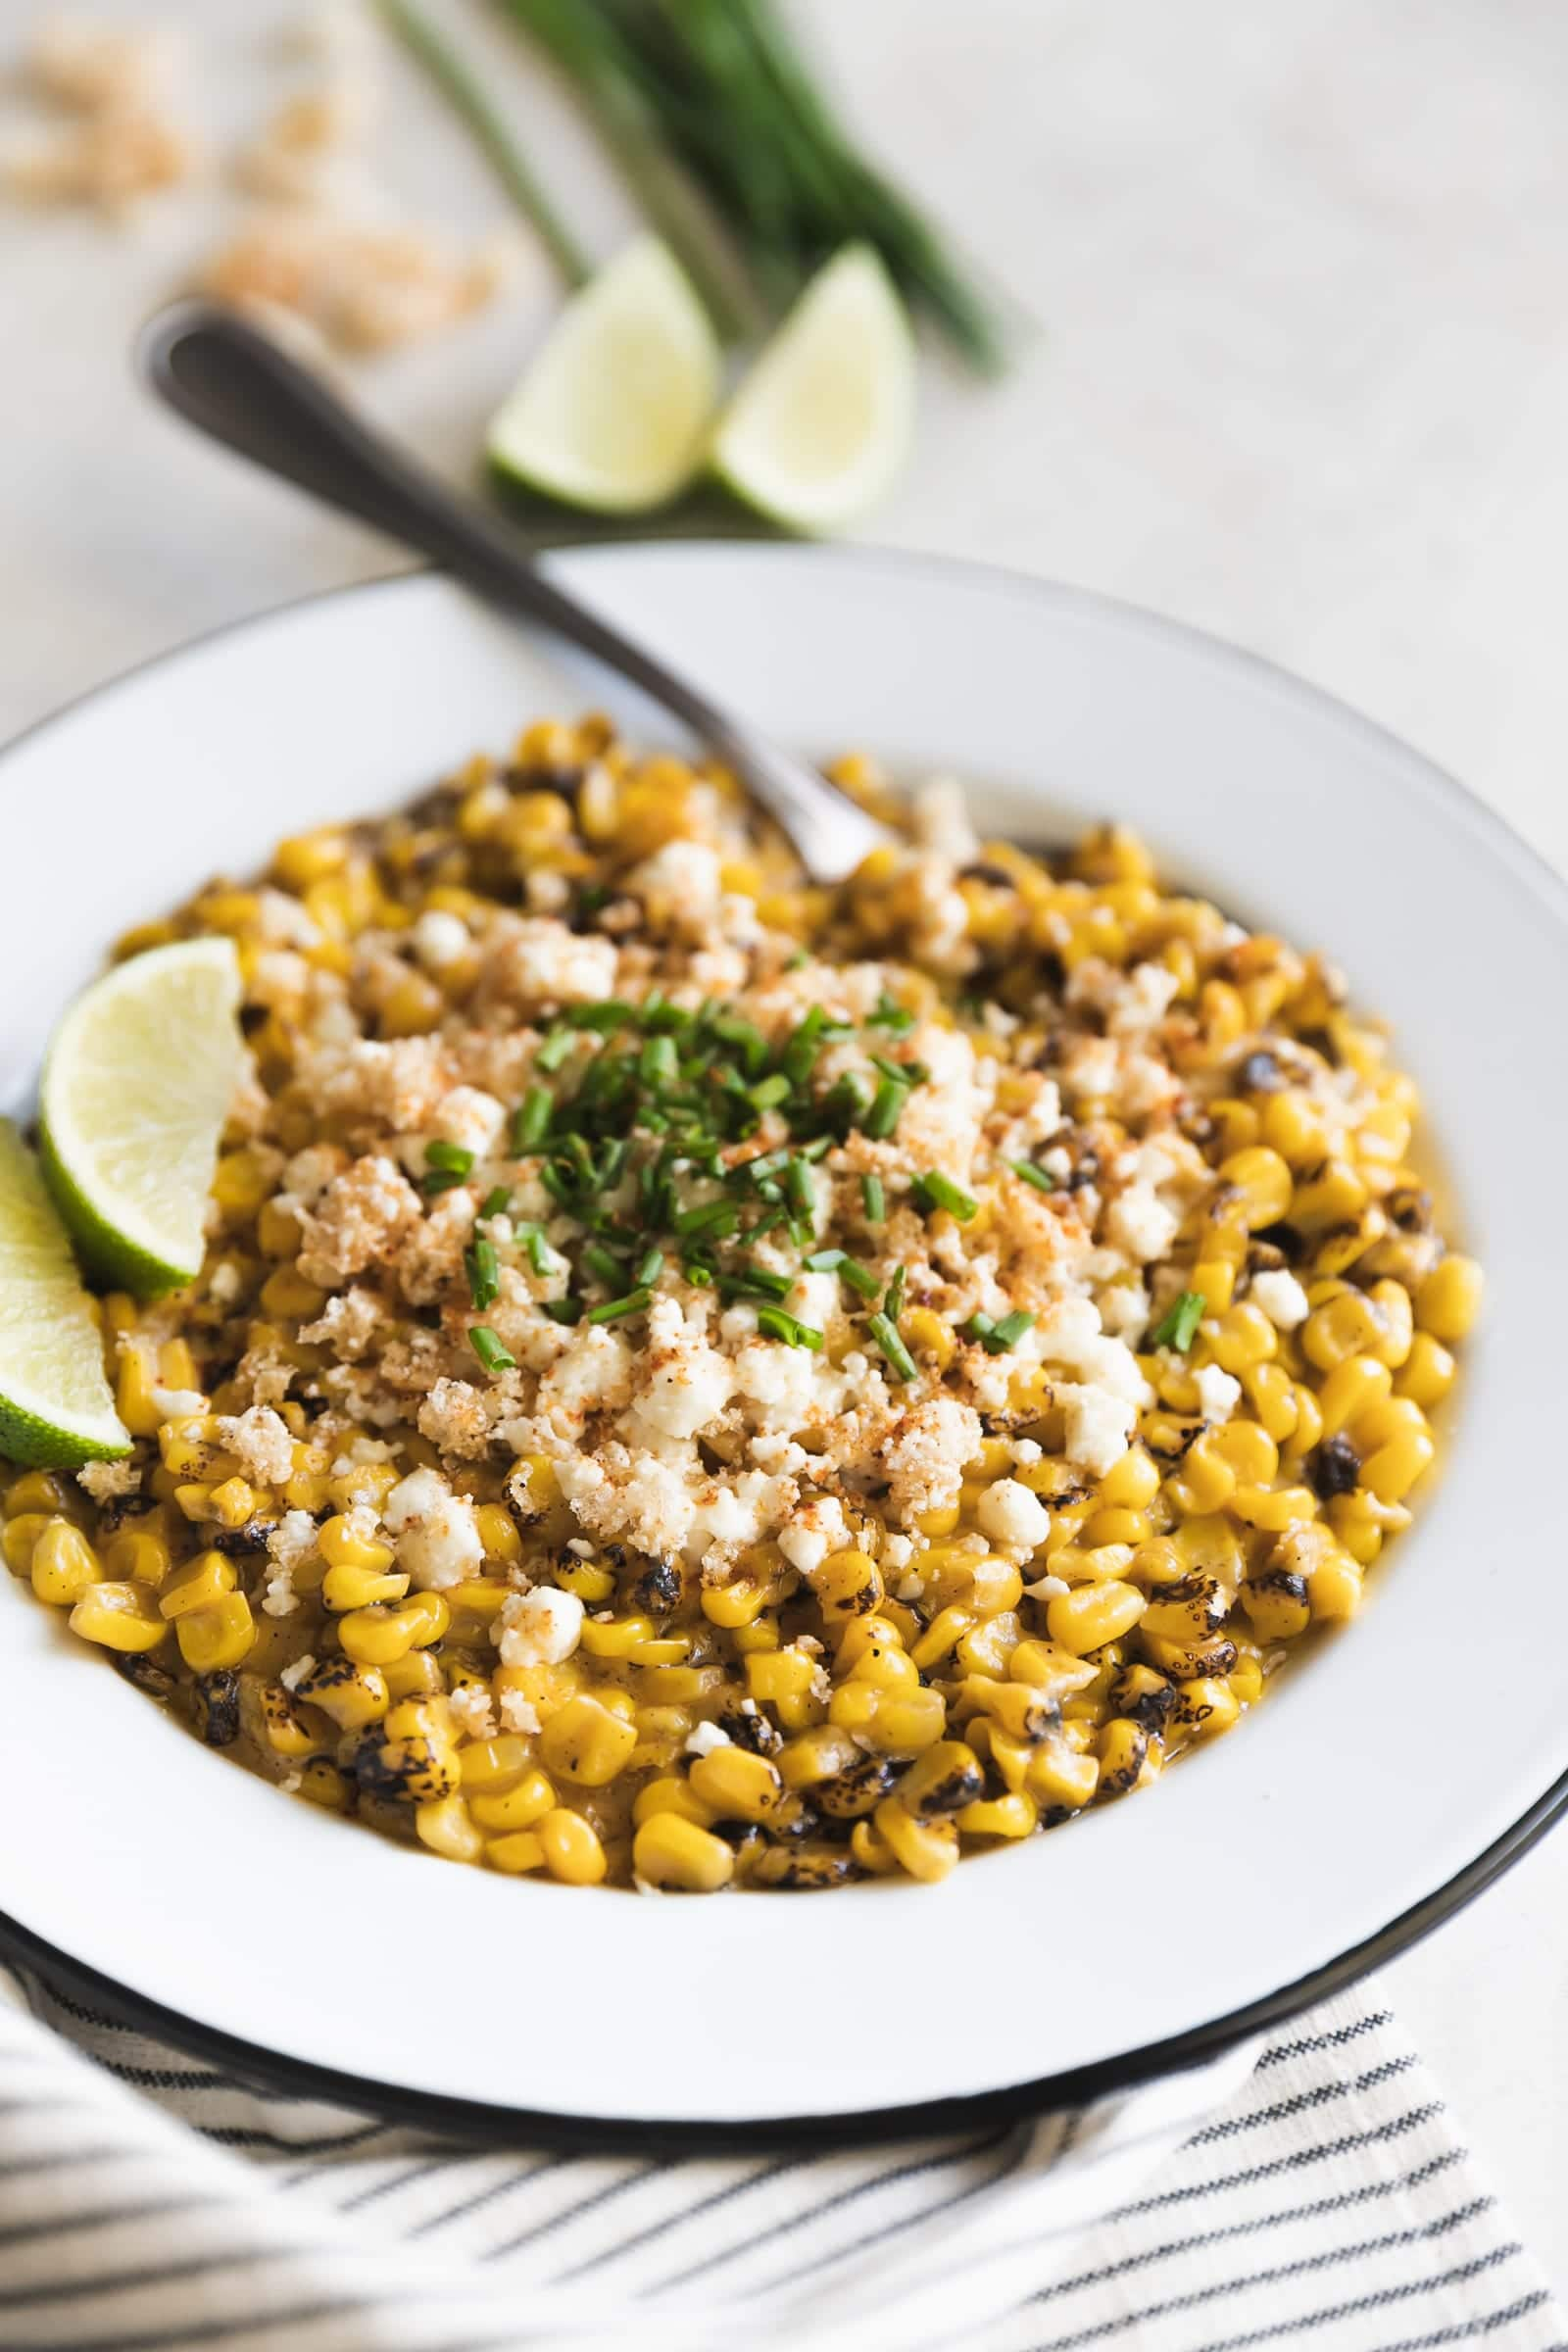 Easy Chipotle Mexican Street Corn. Fire roasted corn mixed with spicy chipotle mayo and mozzarella then topped with crushed pork rinds, crumbled cotija and chives.